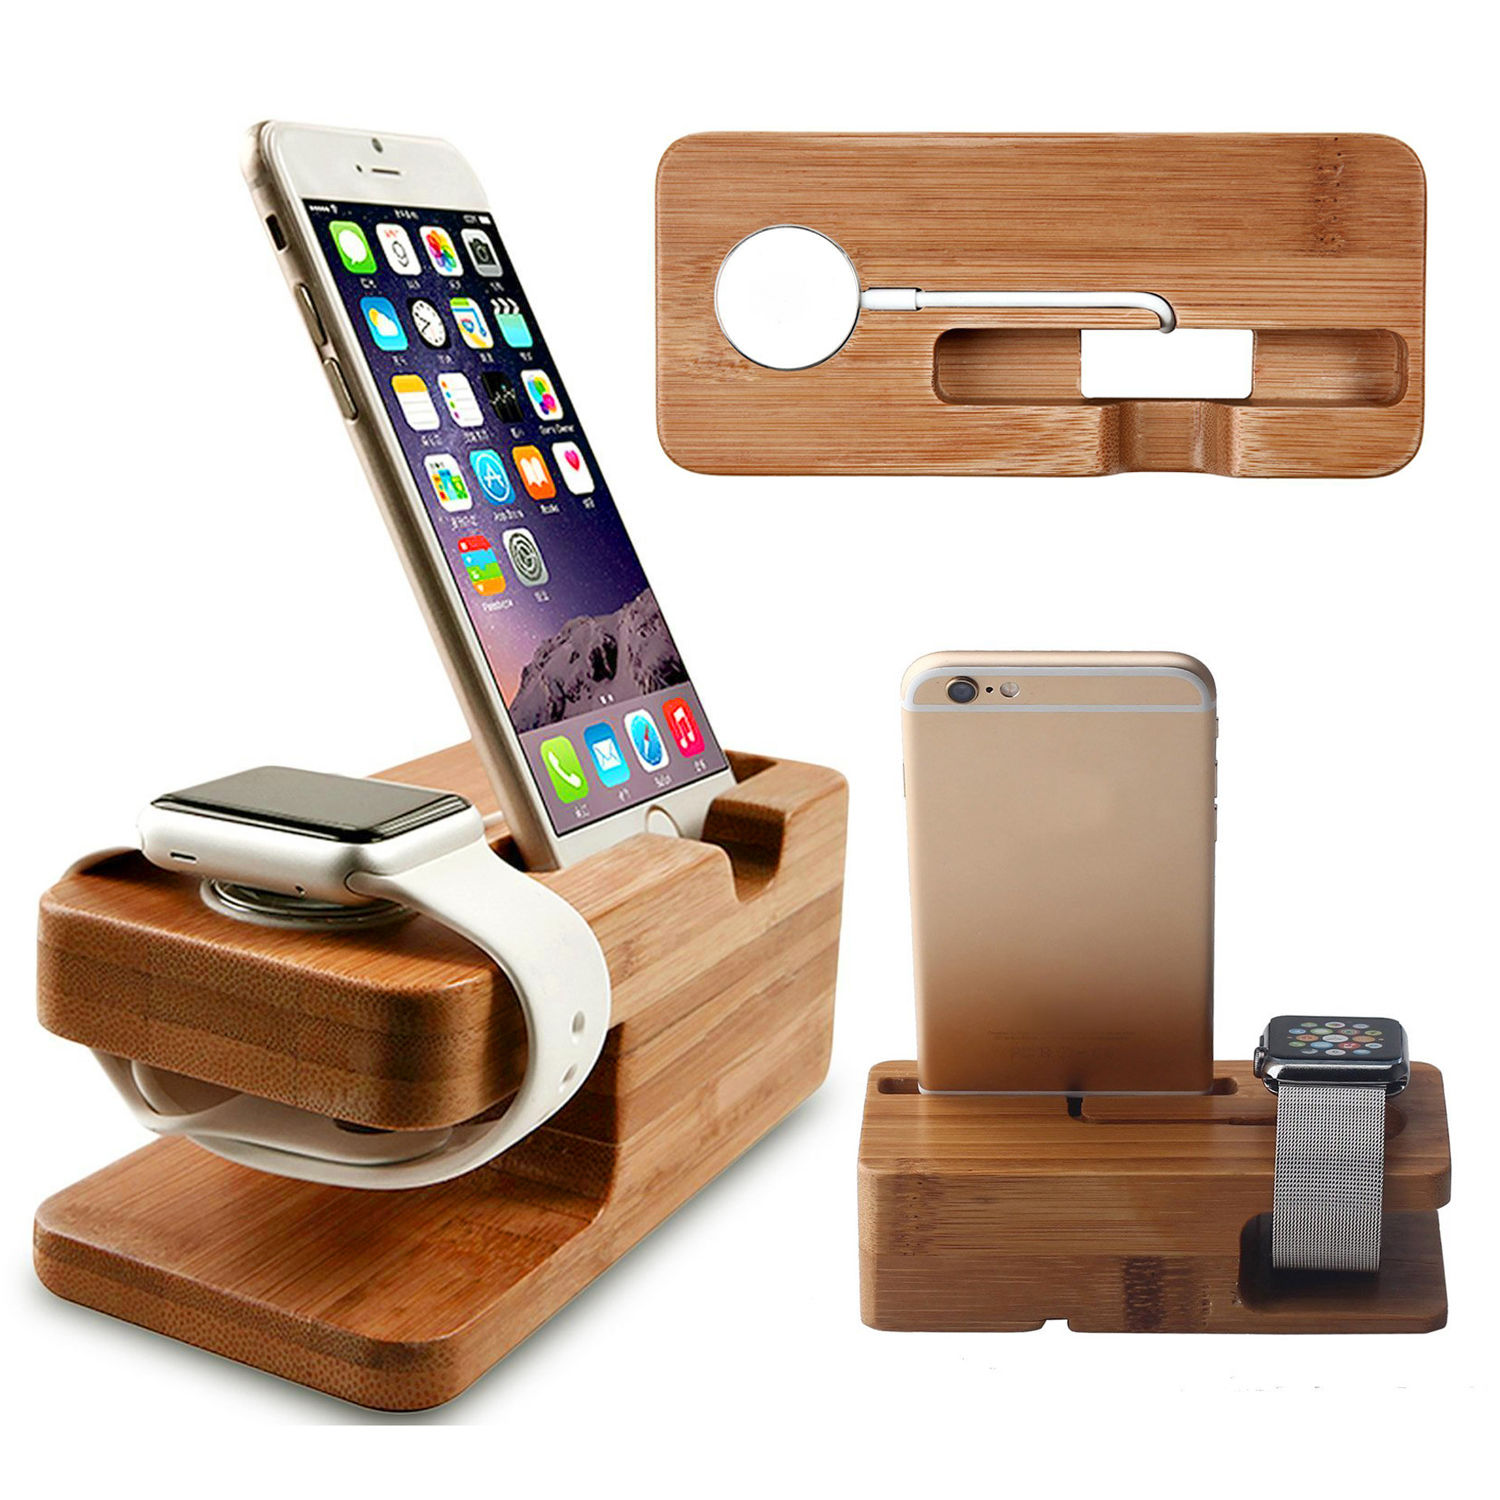 Wood Bamboo Charging Dock Station Charger Stand Holder For Apple Watch 38mm 42mm iPhone 7 7